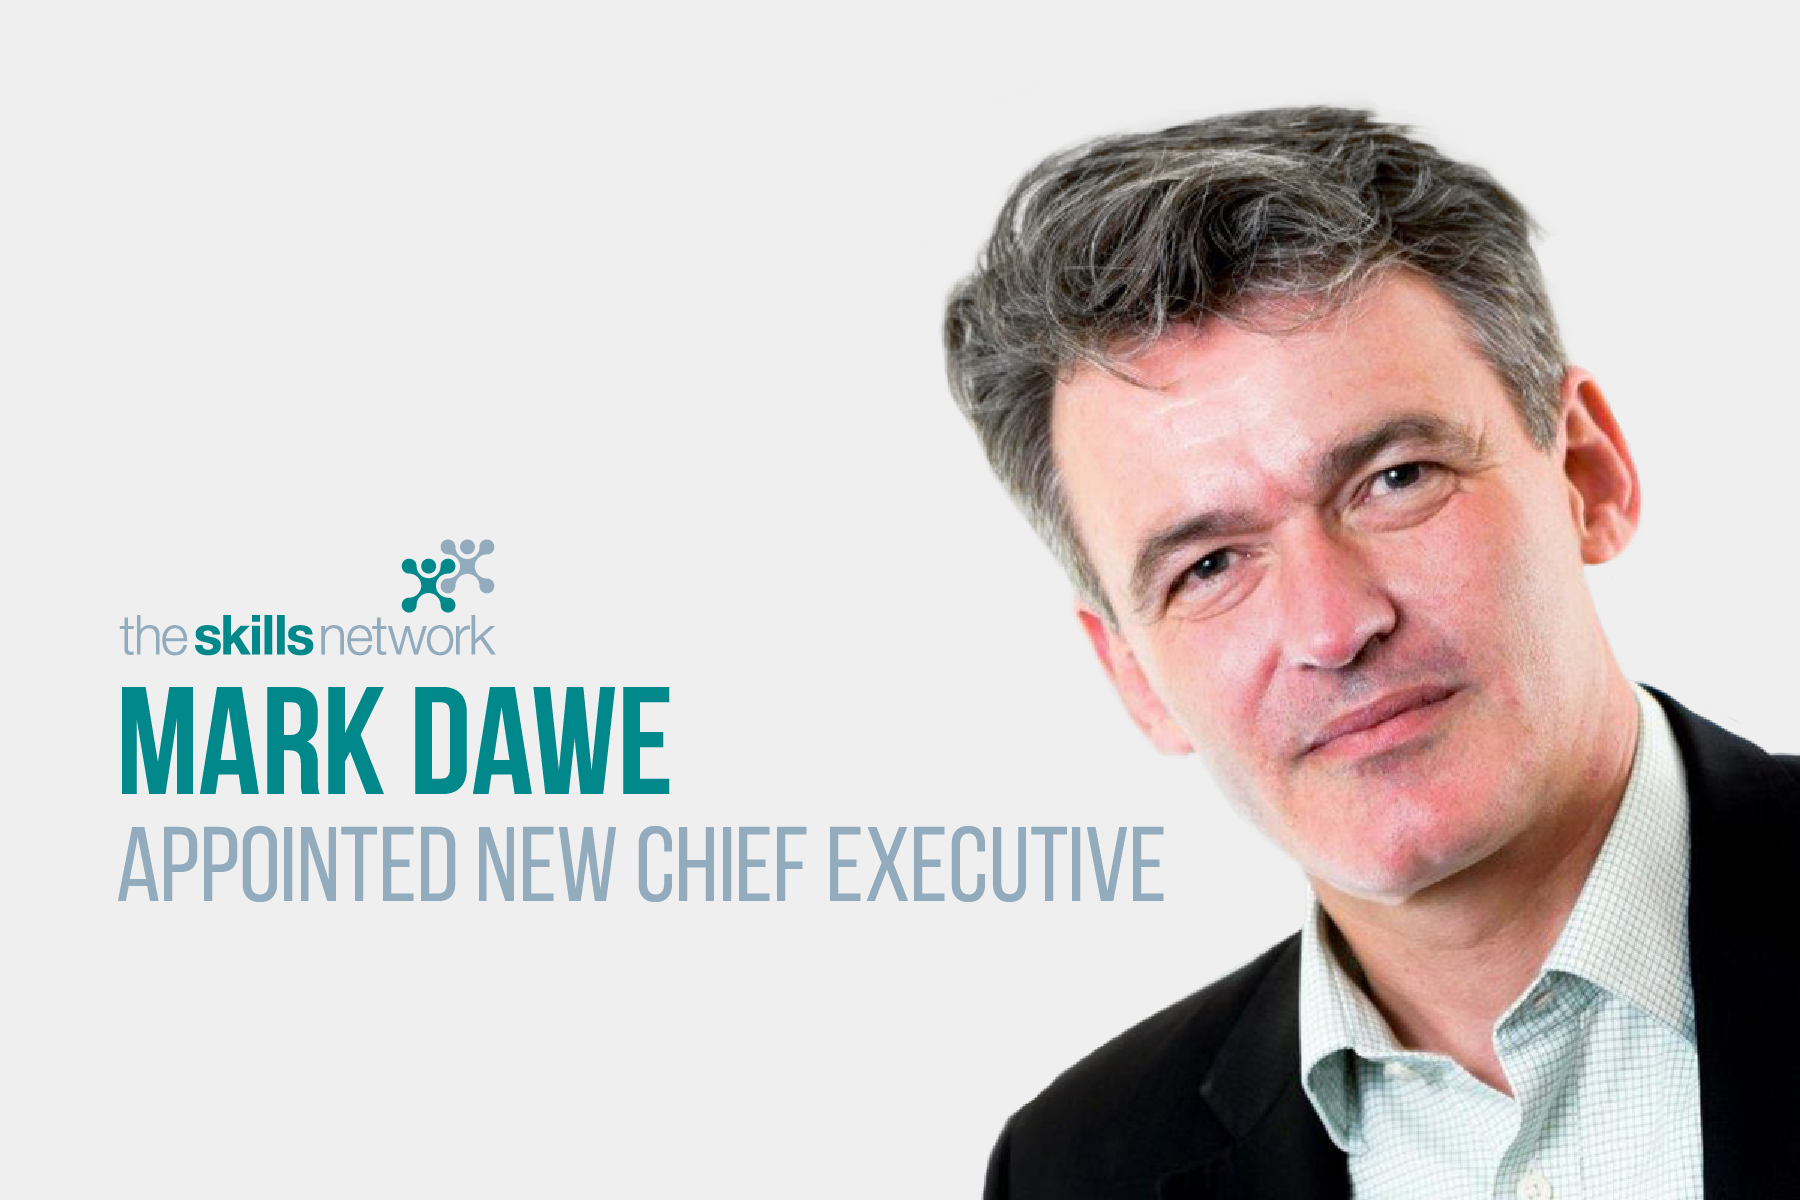 The Skills Network Appoints New Chief Executive